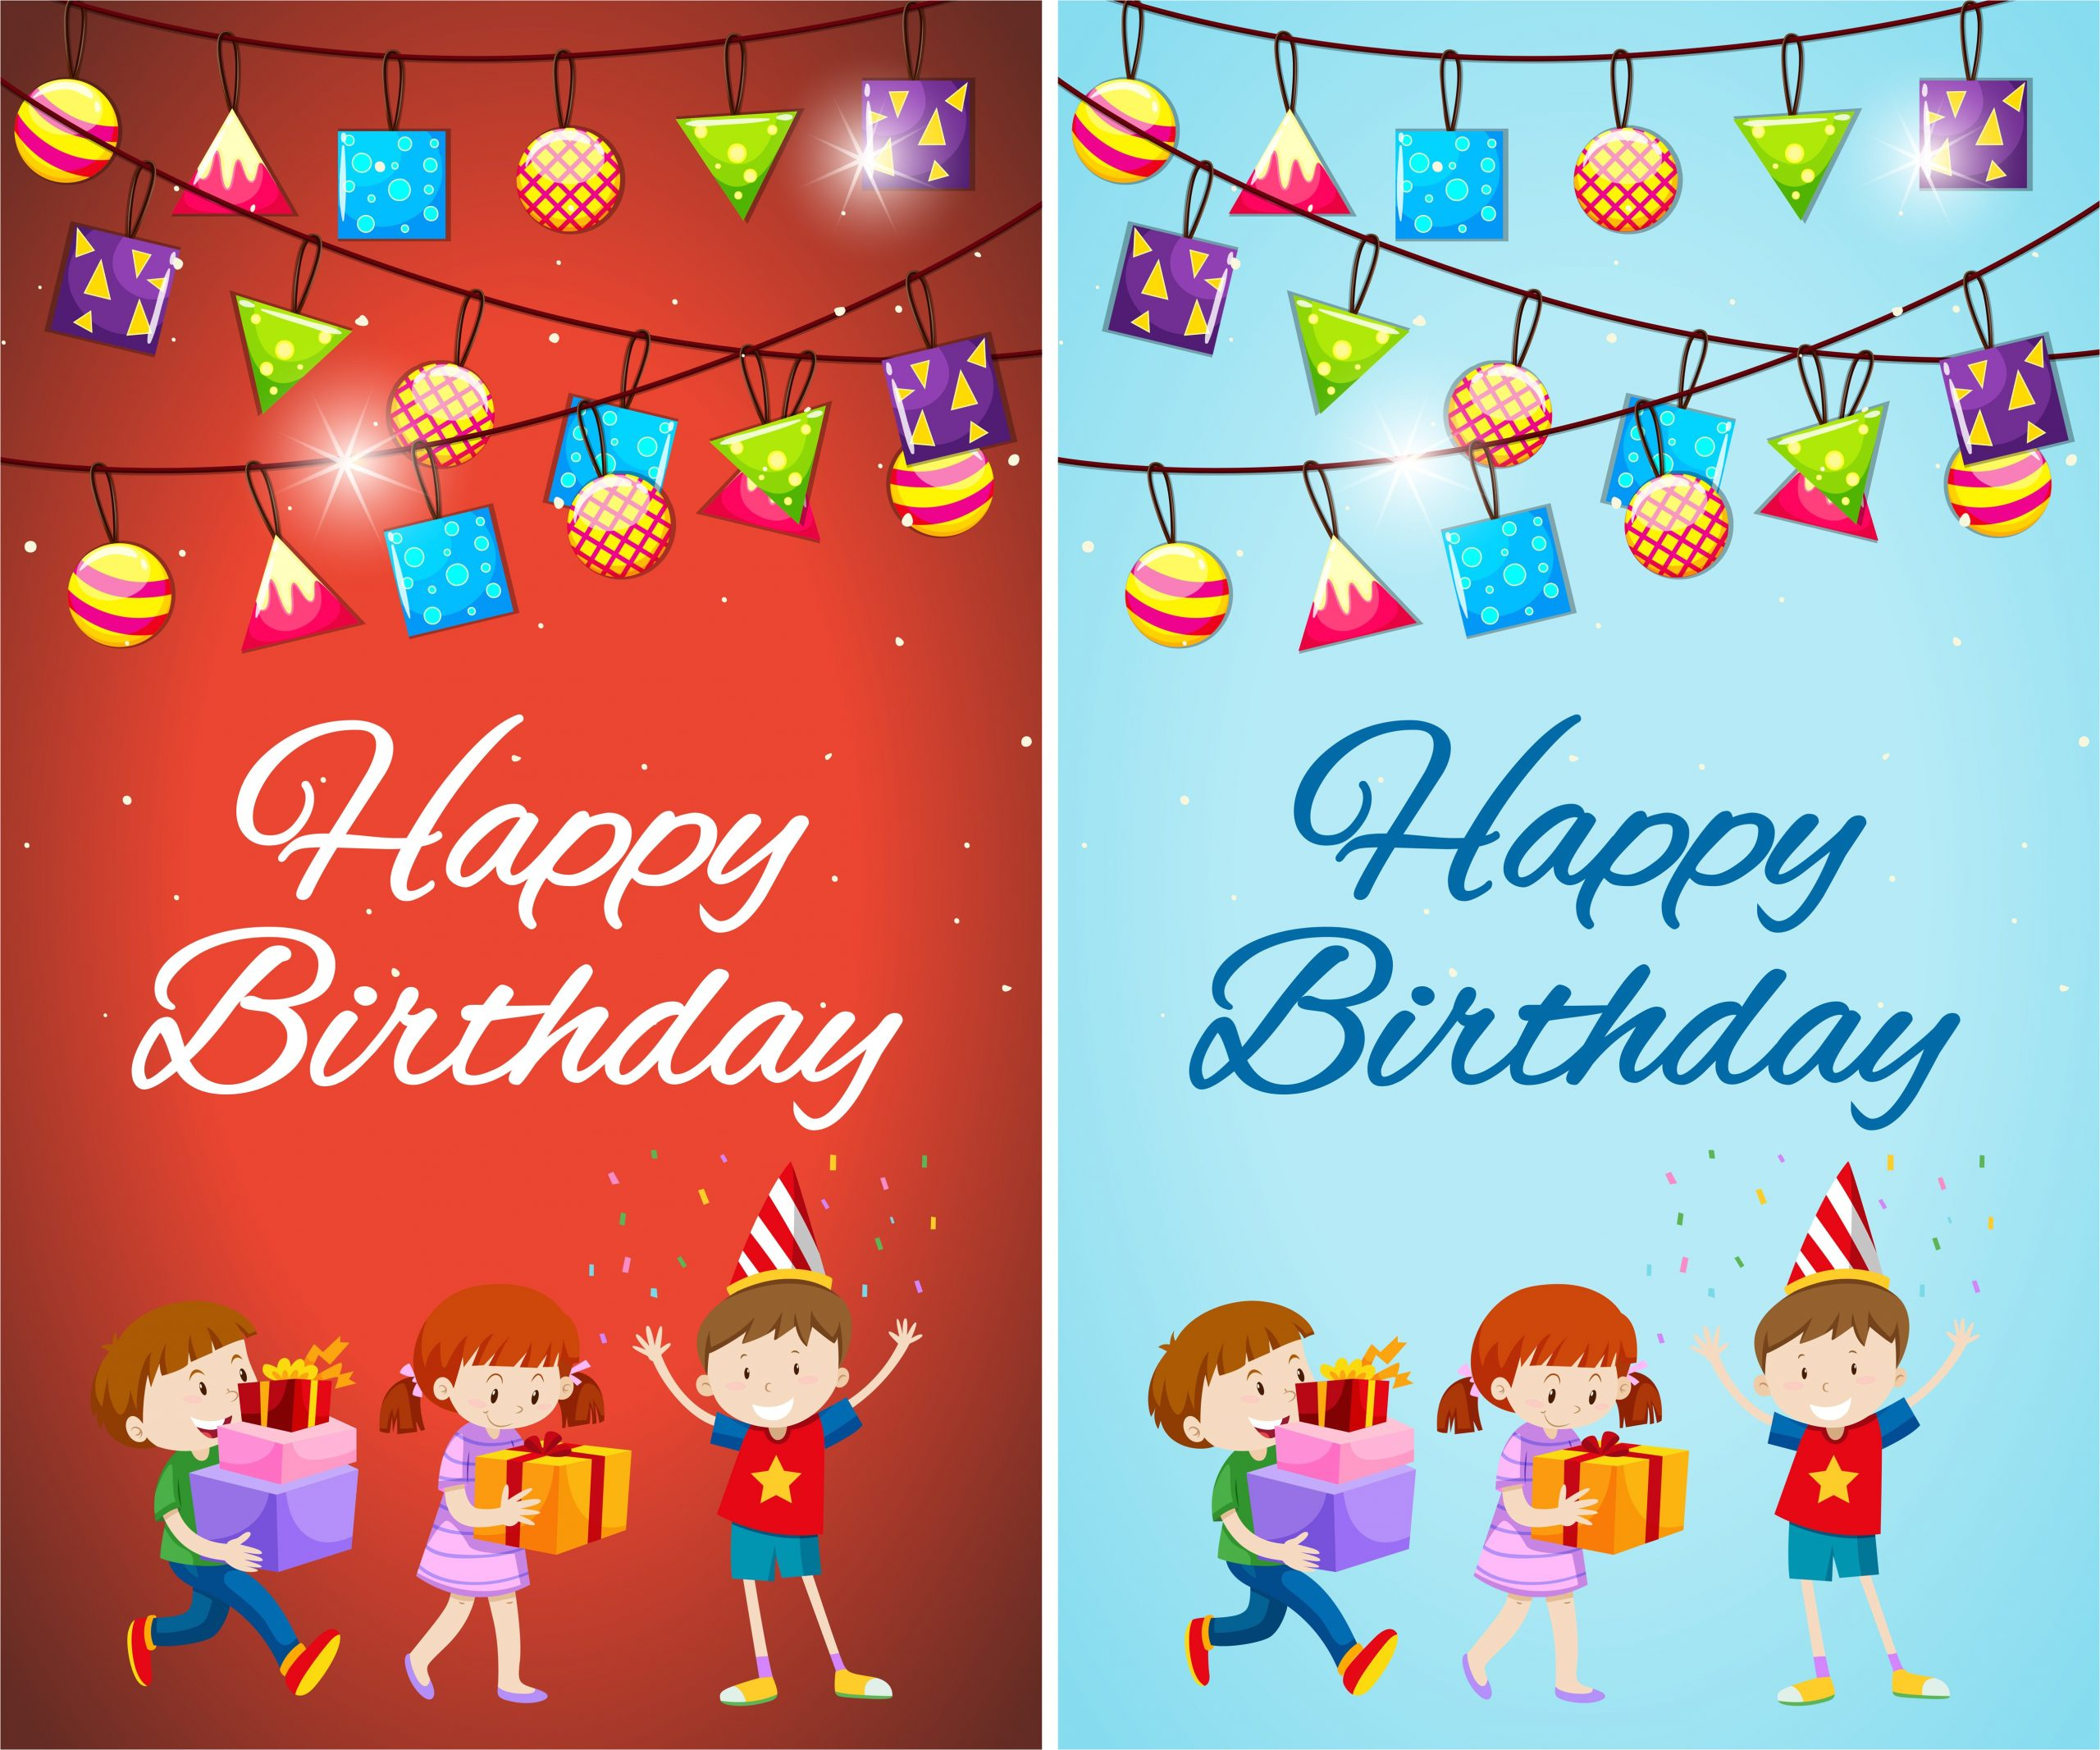 two designs of birthday card template with kids and presents